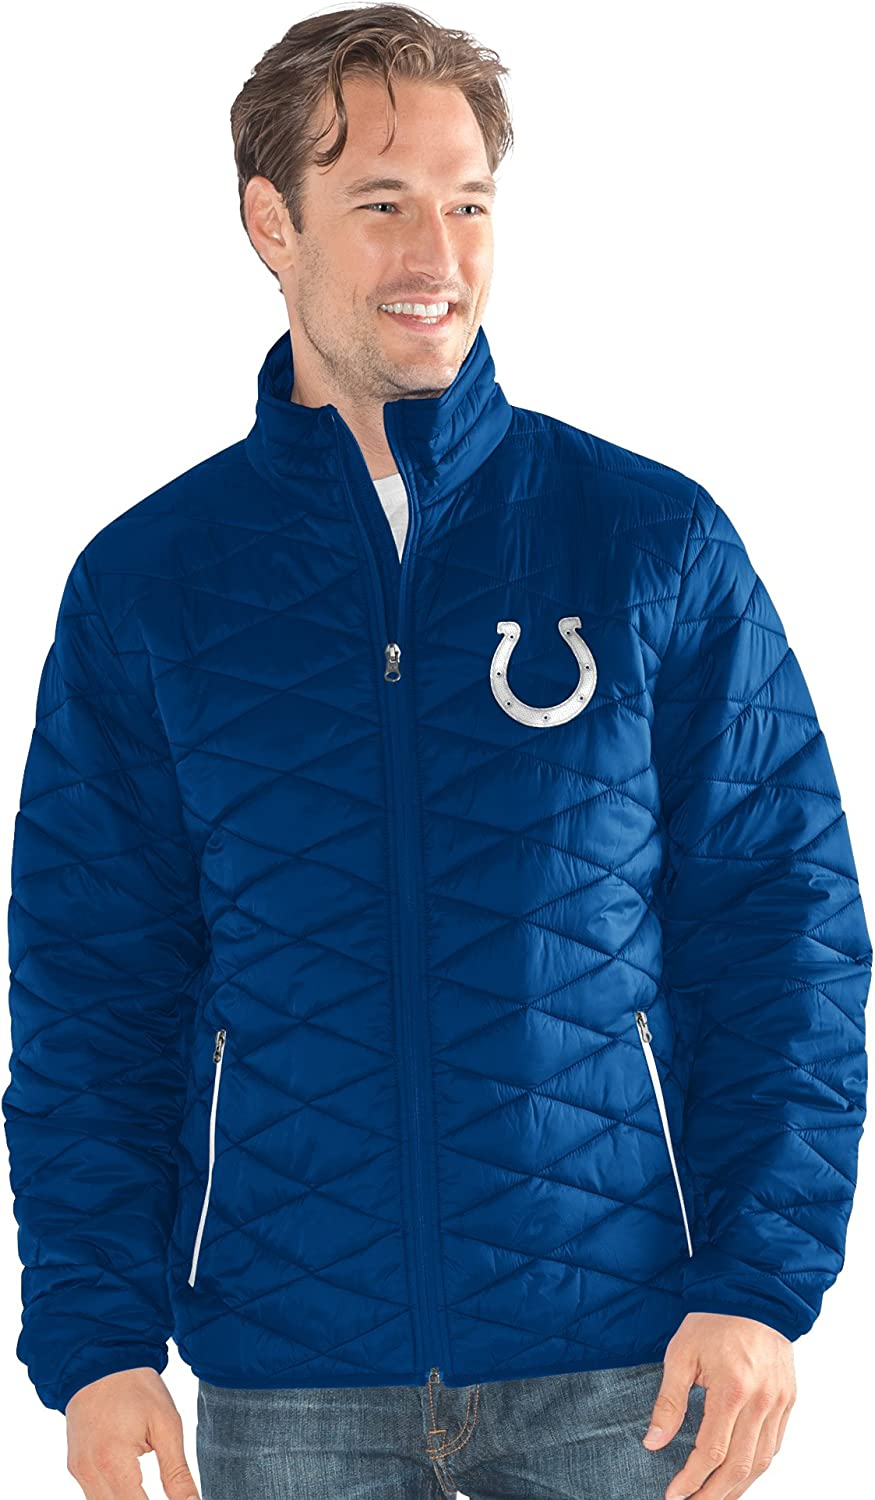 G-III Sports Mens Acclimation 3-in-1 Systems Jacket